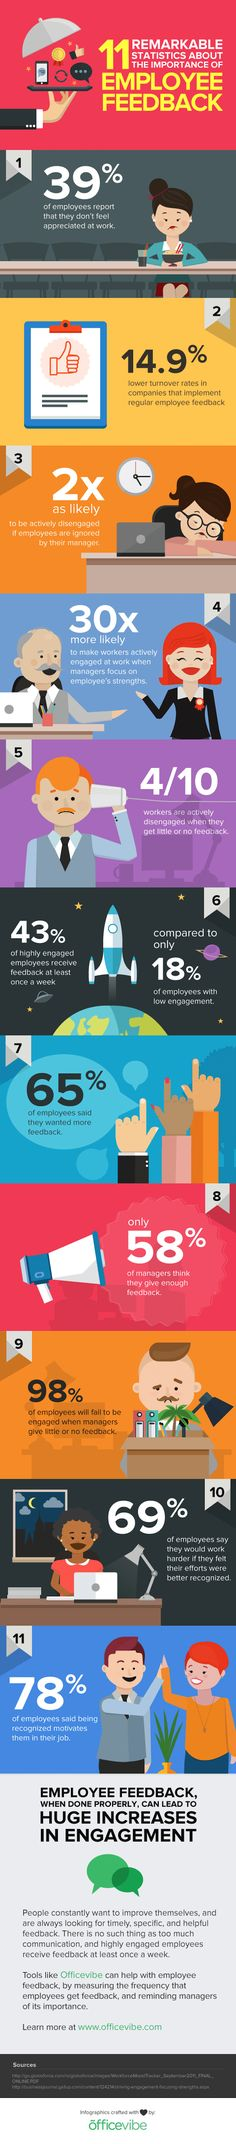 11 Eye-Opening Statistics on the Importance of Employee Feedback [Infographic]